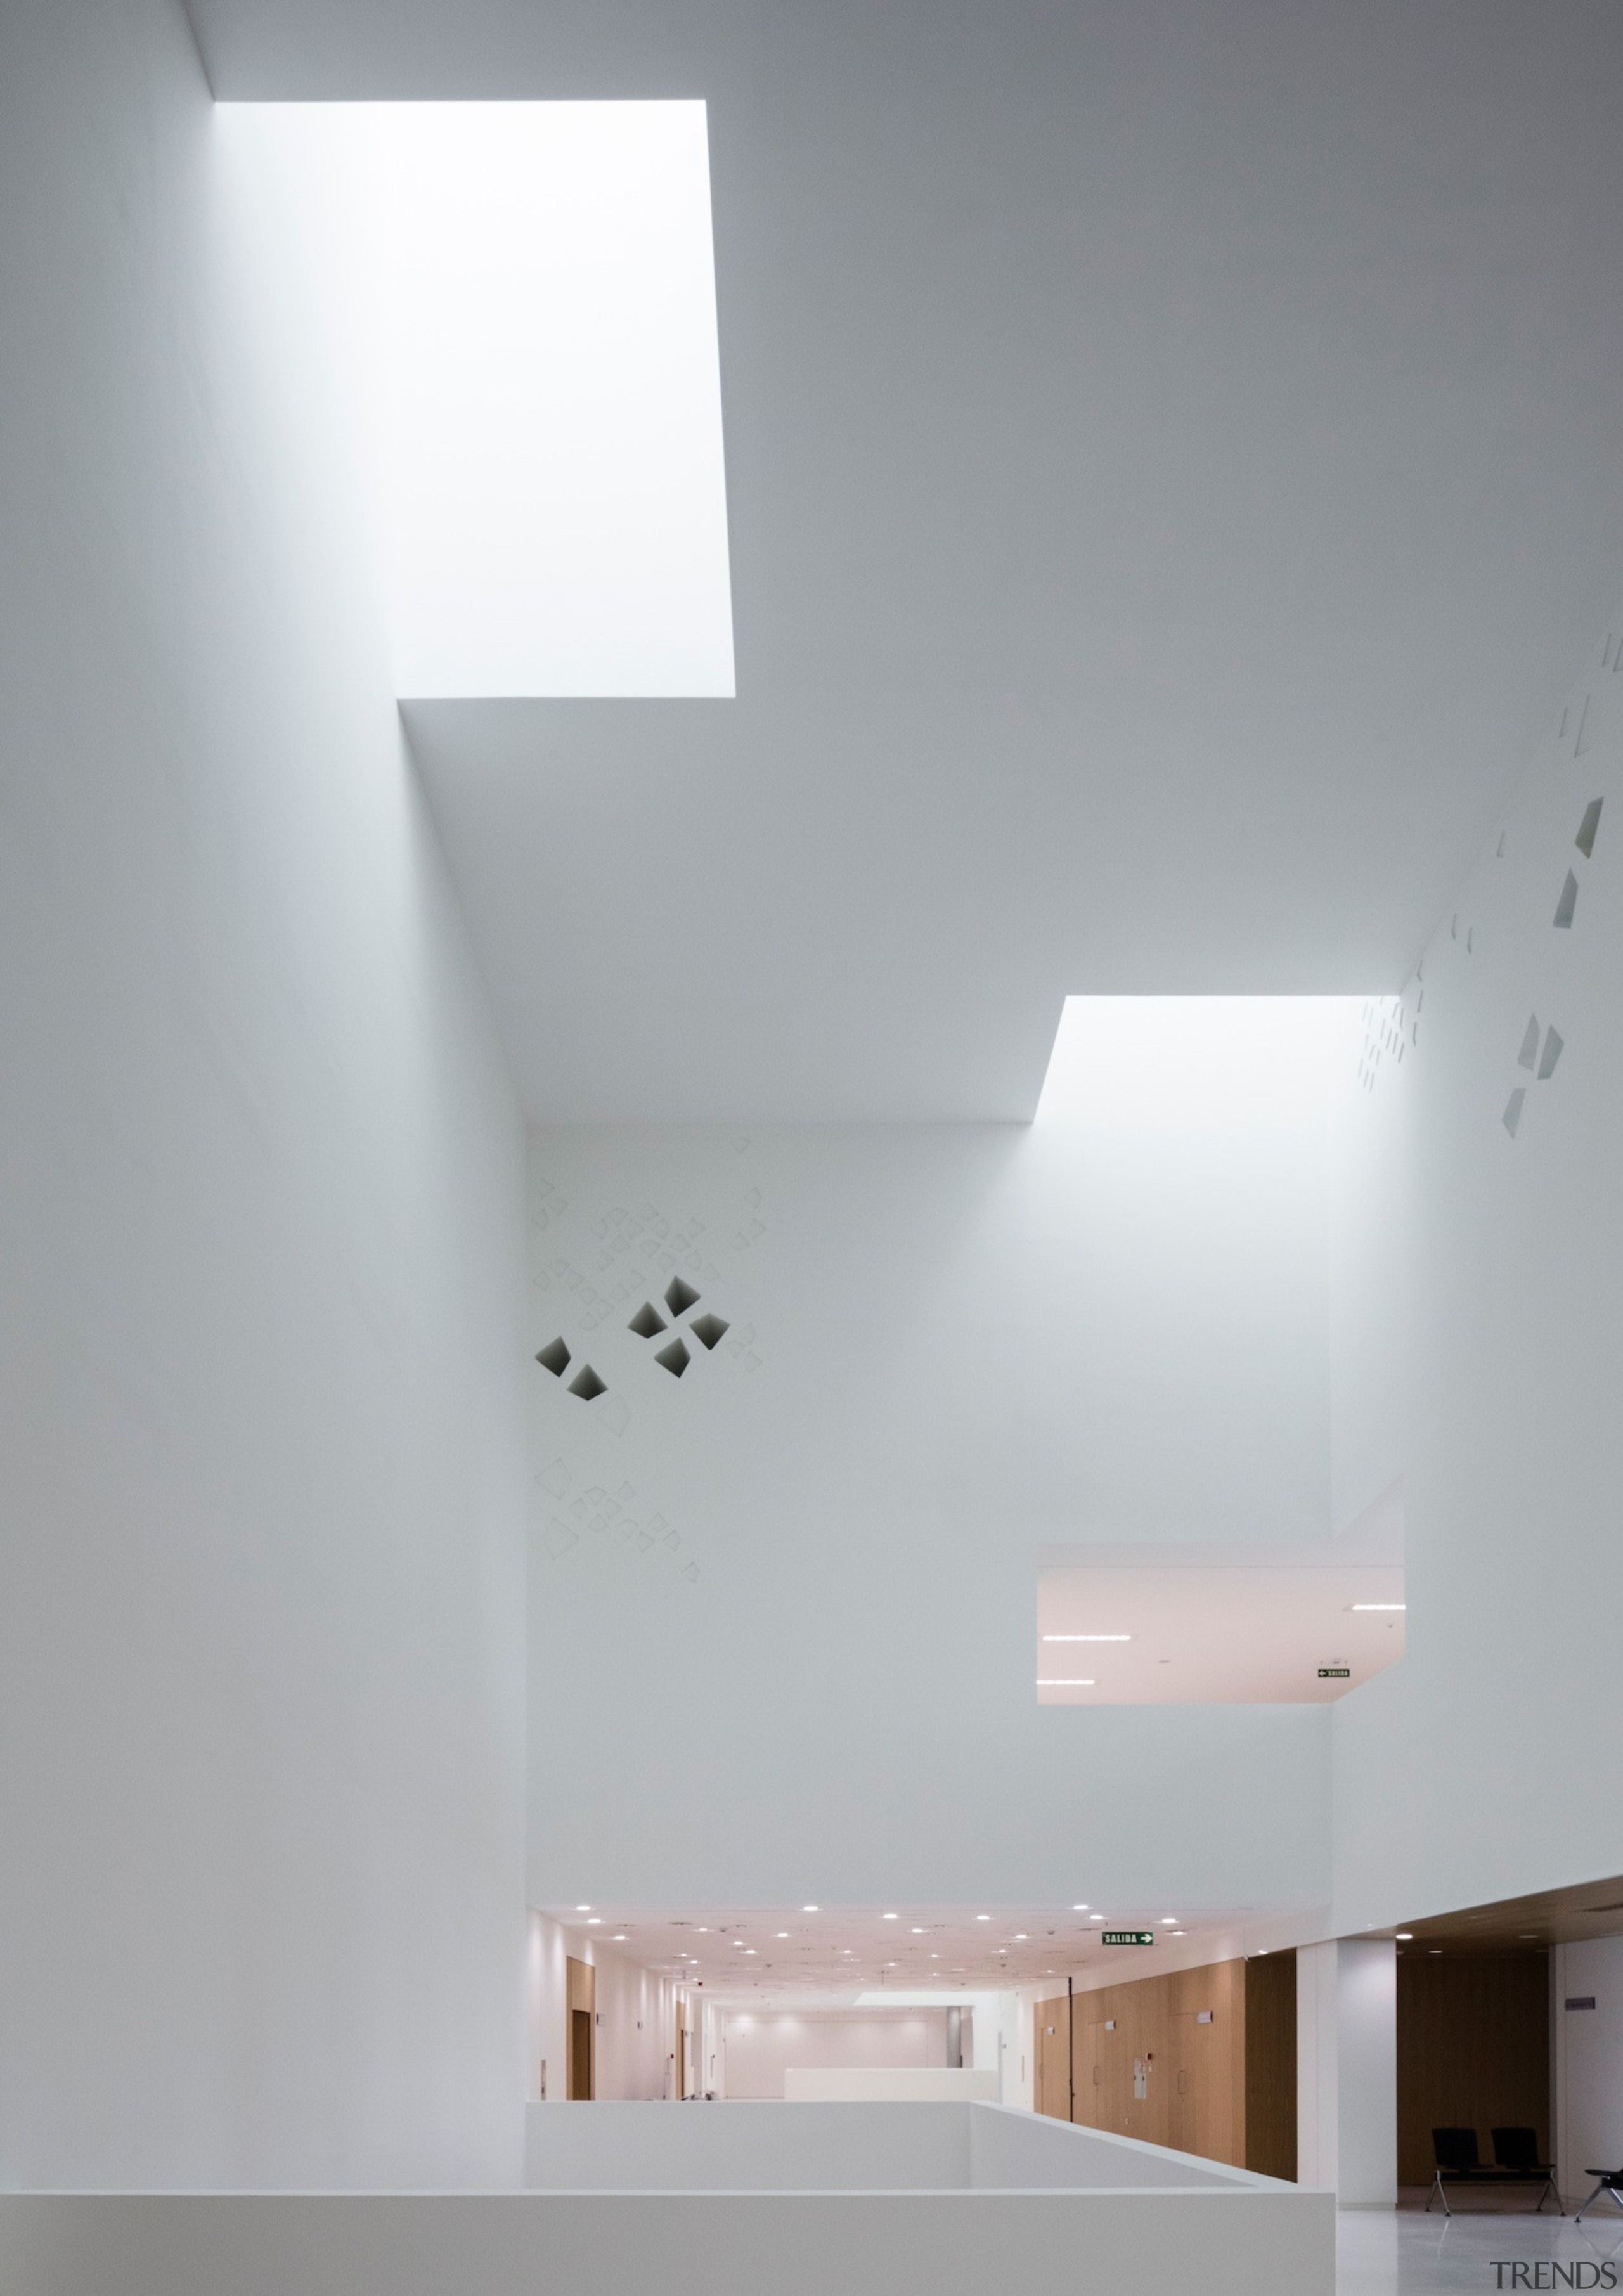 Palace of Justice building | Mecanoo + Ayesa architecture, ceiling, daylighting, daytime, house, interior design, light, light fixture, lighting, product design, wall, gray